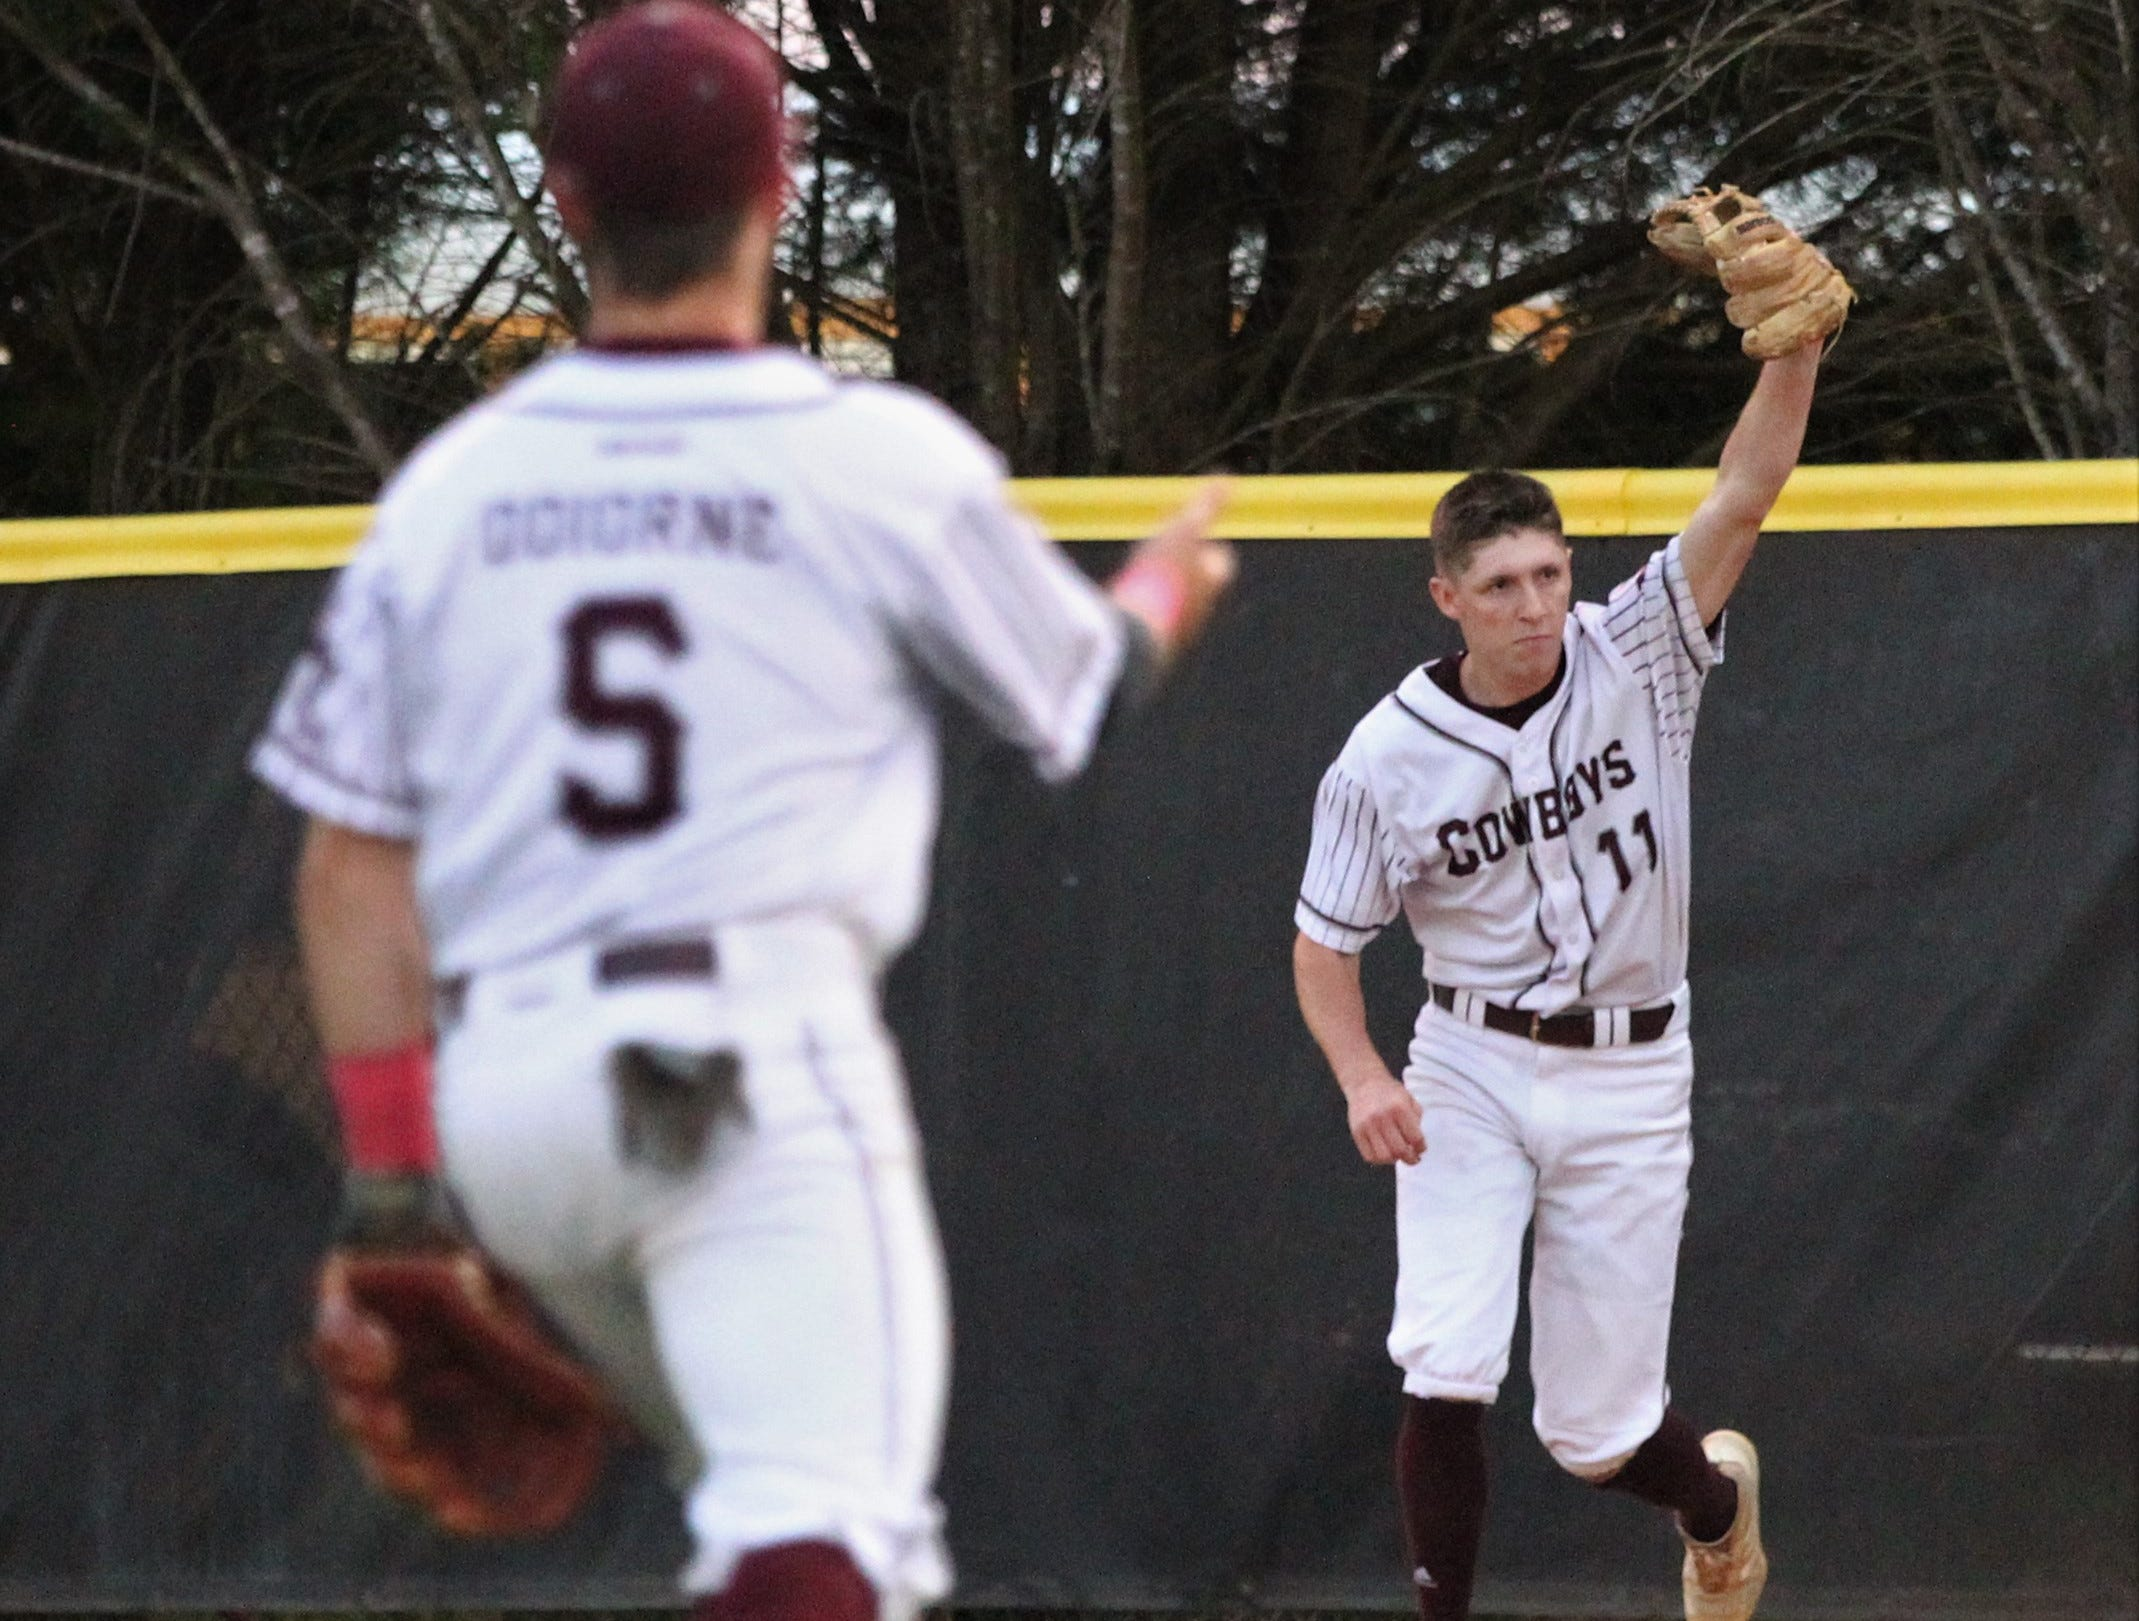 Madison County pitcher Dilan Lawson reacts after making an important running catch in the sixth inning as the Cowboys beat Union County 1-0 during a Region 2-1A semifinal on May 14, 2019.